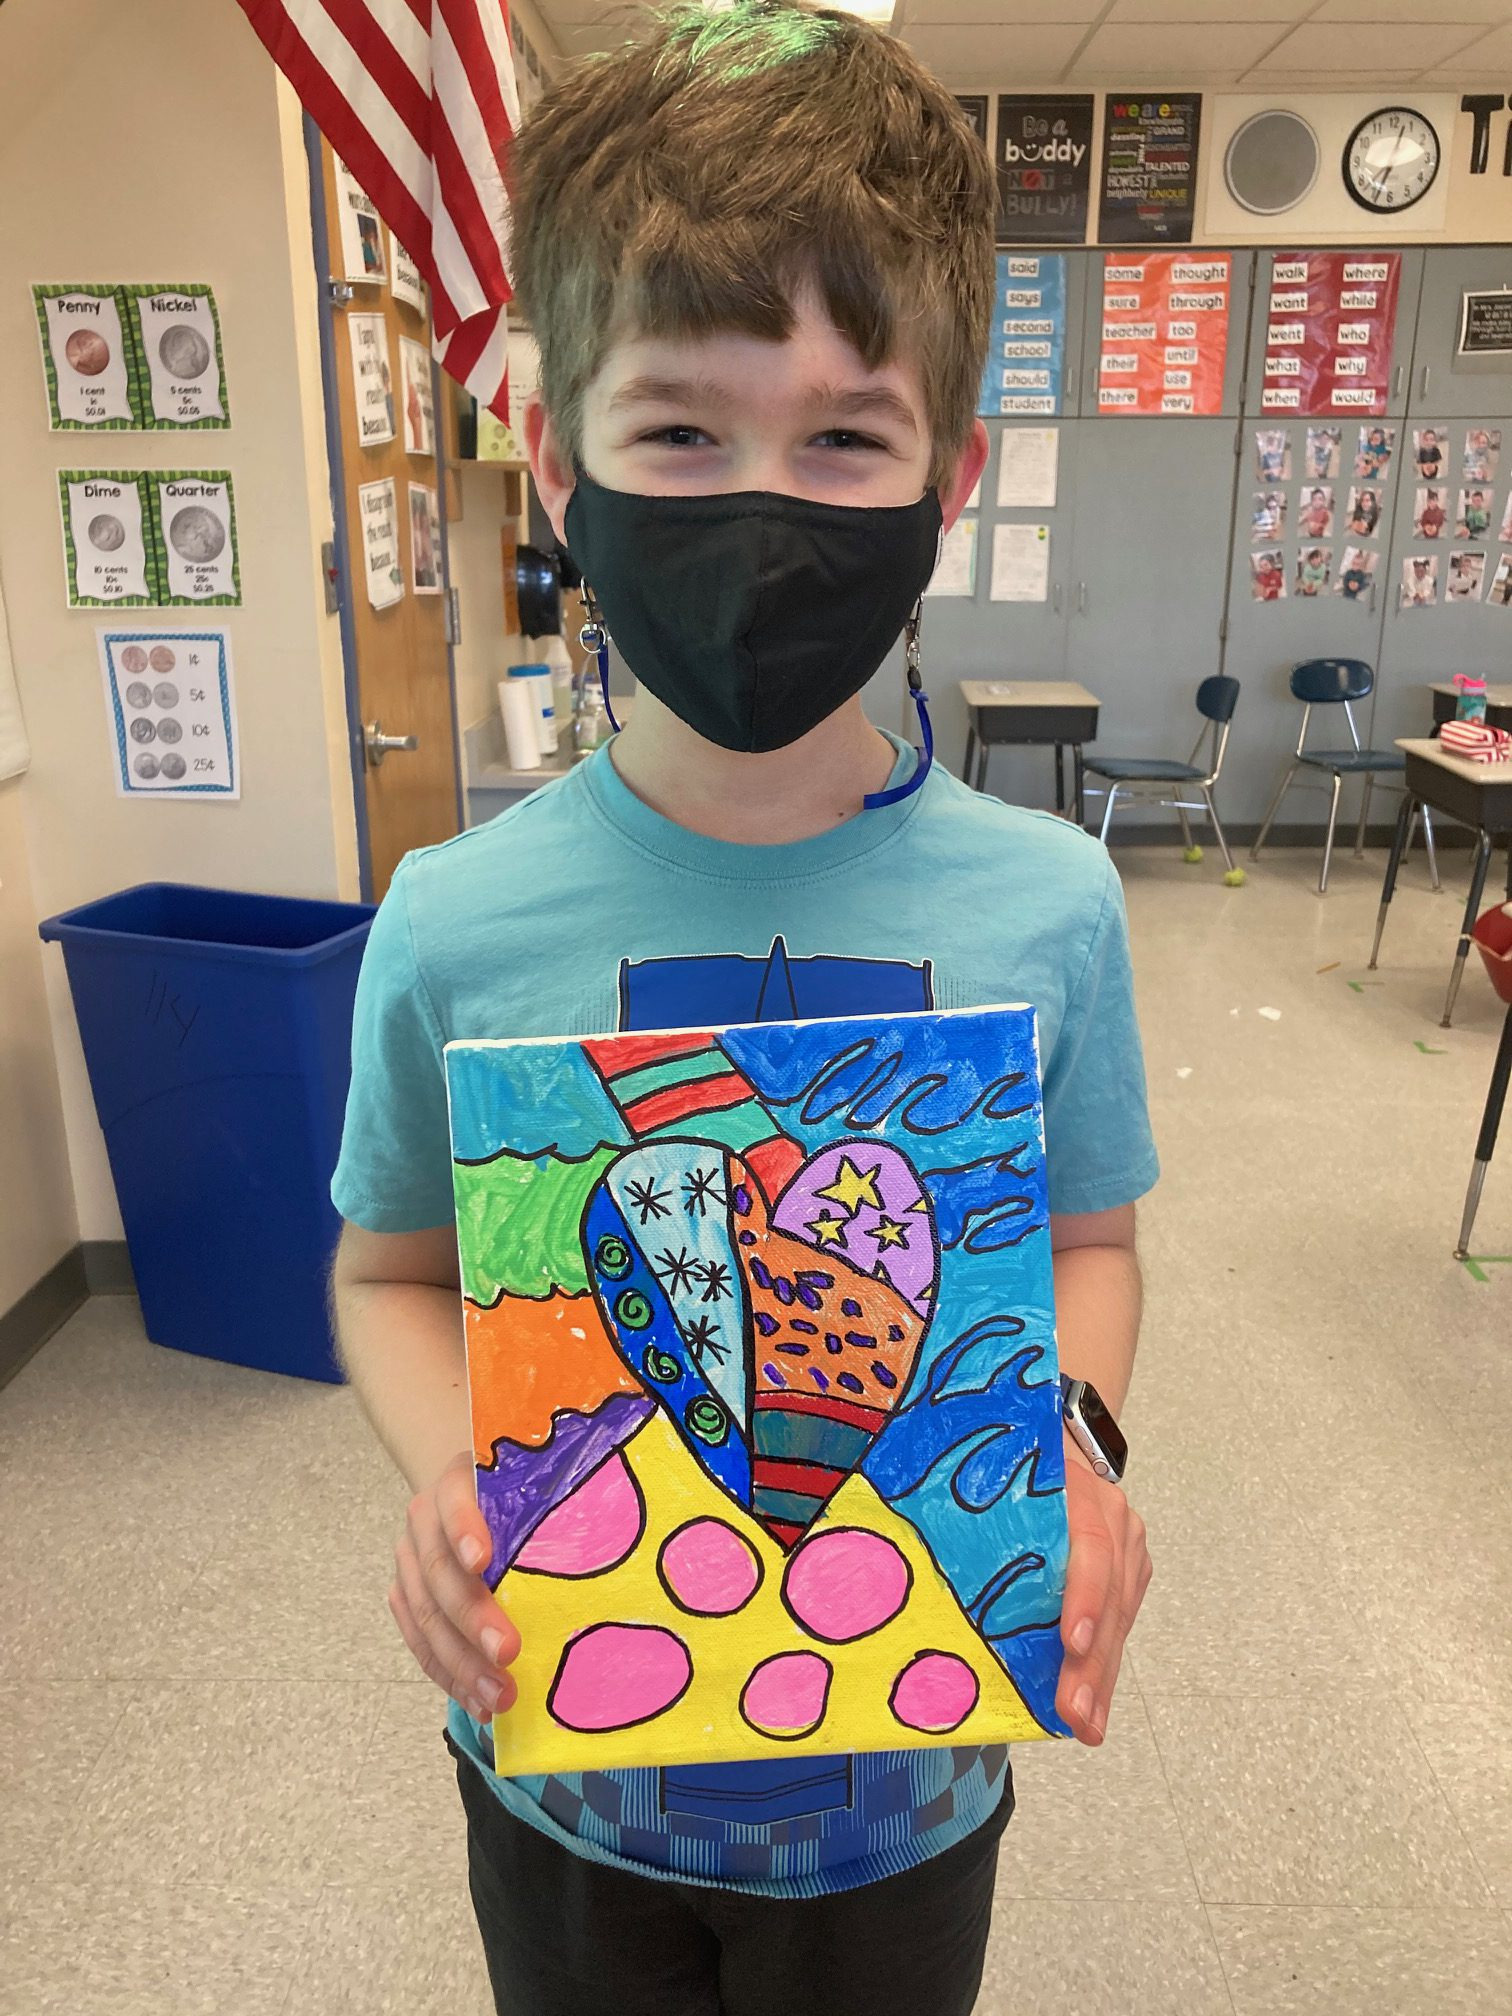 Arongen Student Council Members show Arongen Pride by completing community projects.  These fourth and fifth graders painted kindness rocks to place around their school and also painted canvases for the residents of Schuyler Ridge Nursing Home.